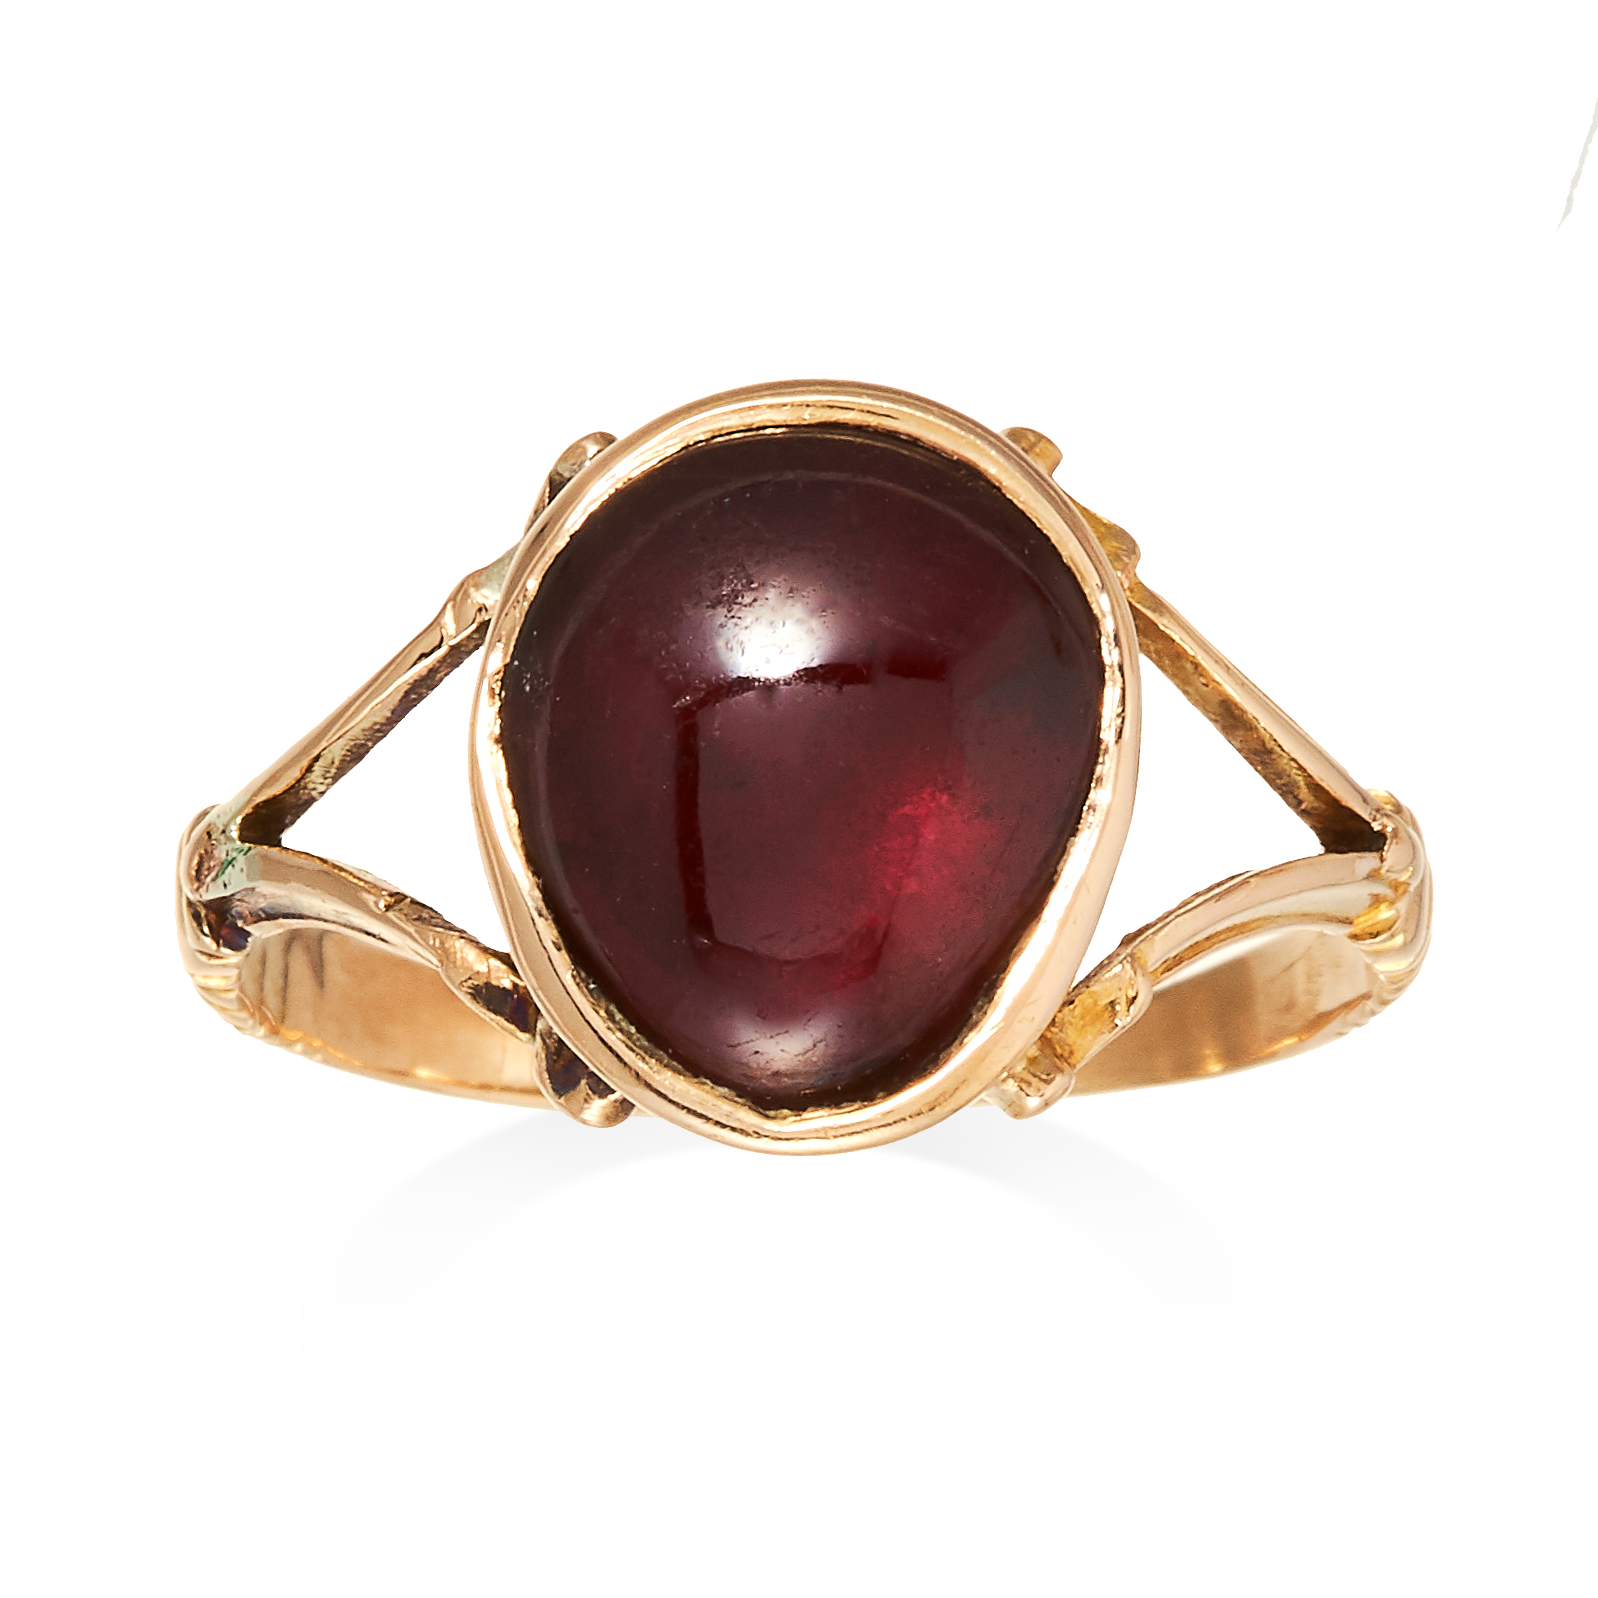 AN ANTIQUE GARNET RING, 19TH CENTURY in yellow gold, set with a large oval cabochon garnet on a